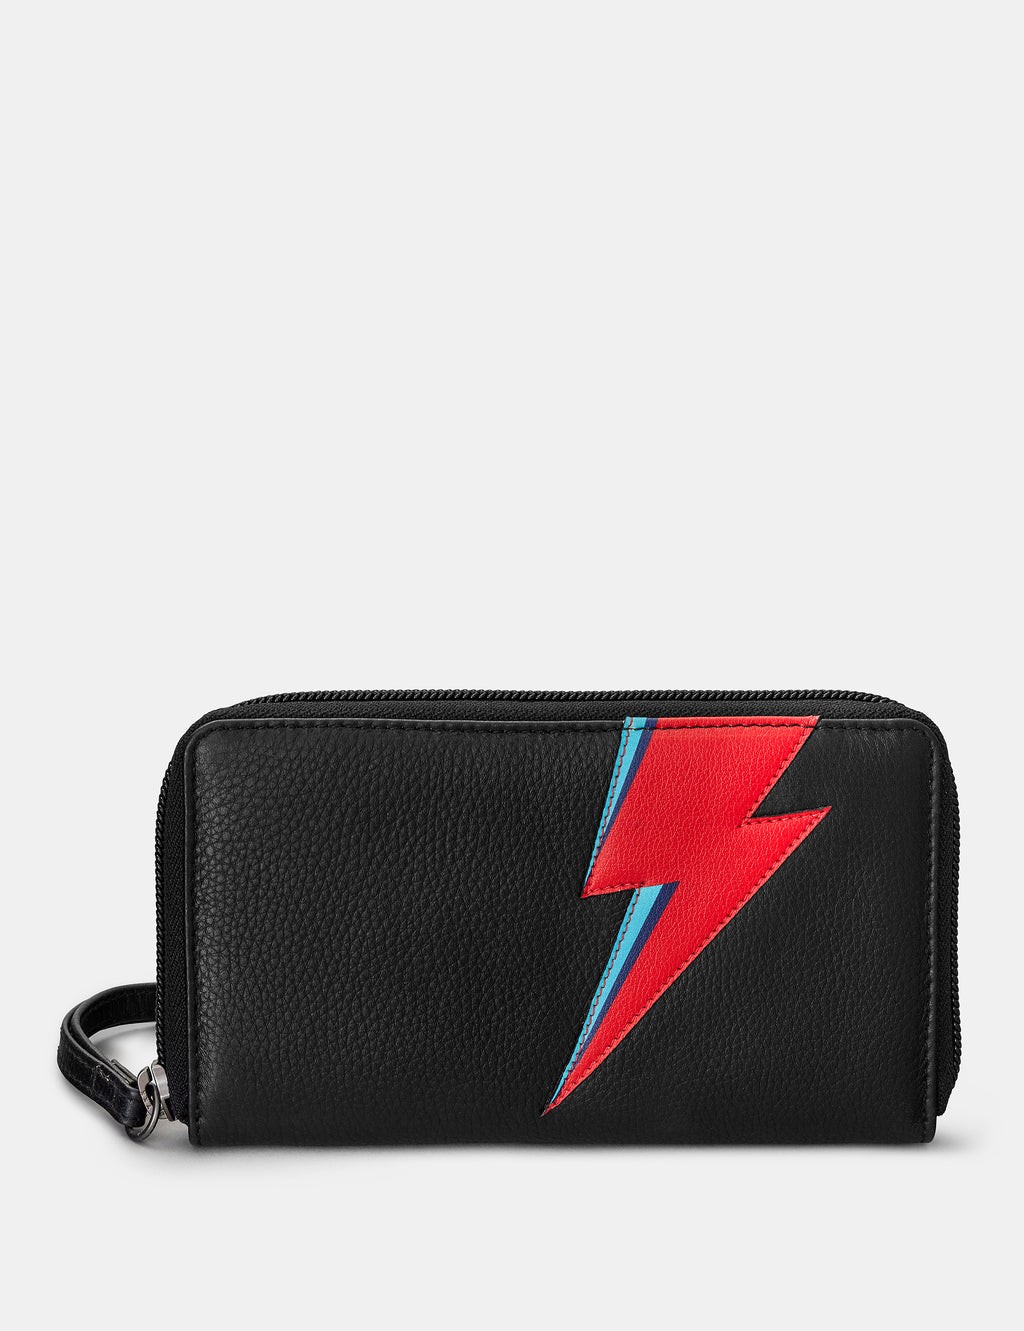 Lightning Bolt Black Zip Round Leather Purse With Strap